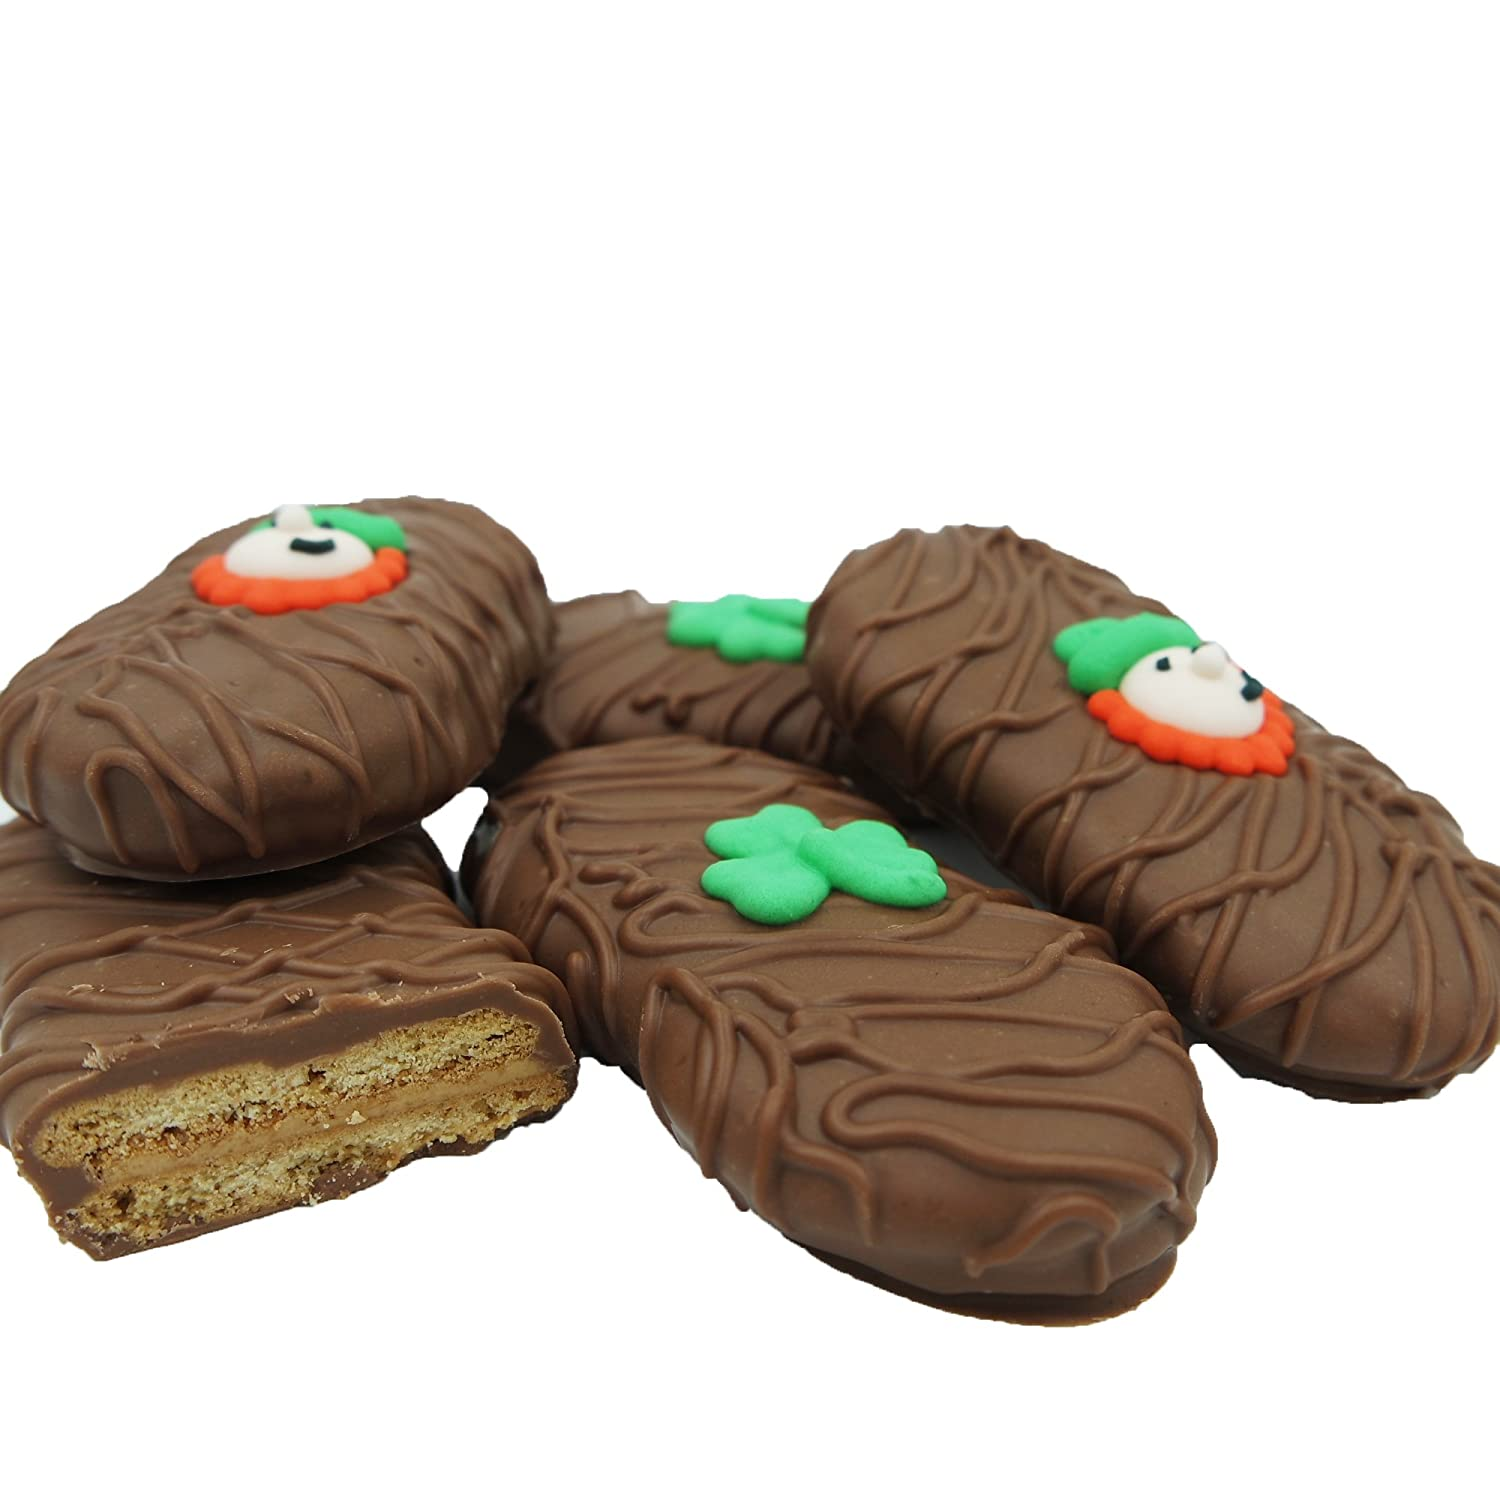 Philadelphia Candies Milk Chocolate Covered Nutter Butter Cookies, St. Patrick's Day Leprechaun Shamrock Gift Net Wt 8 oz